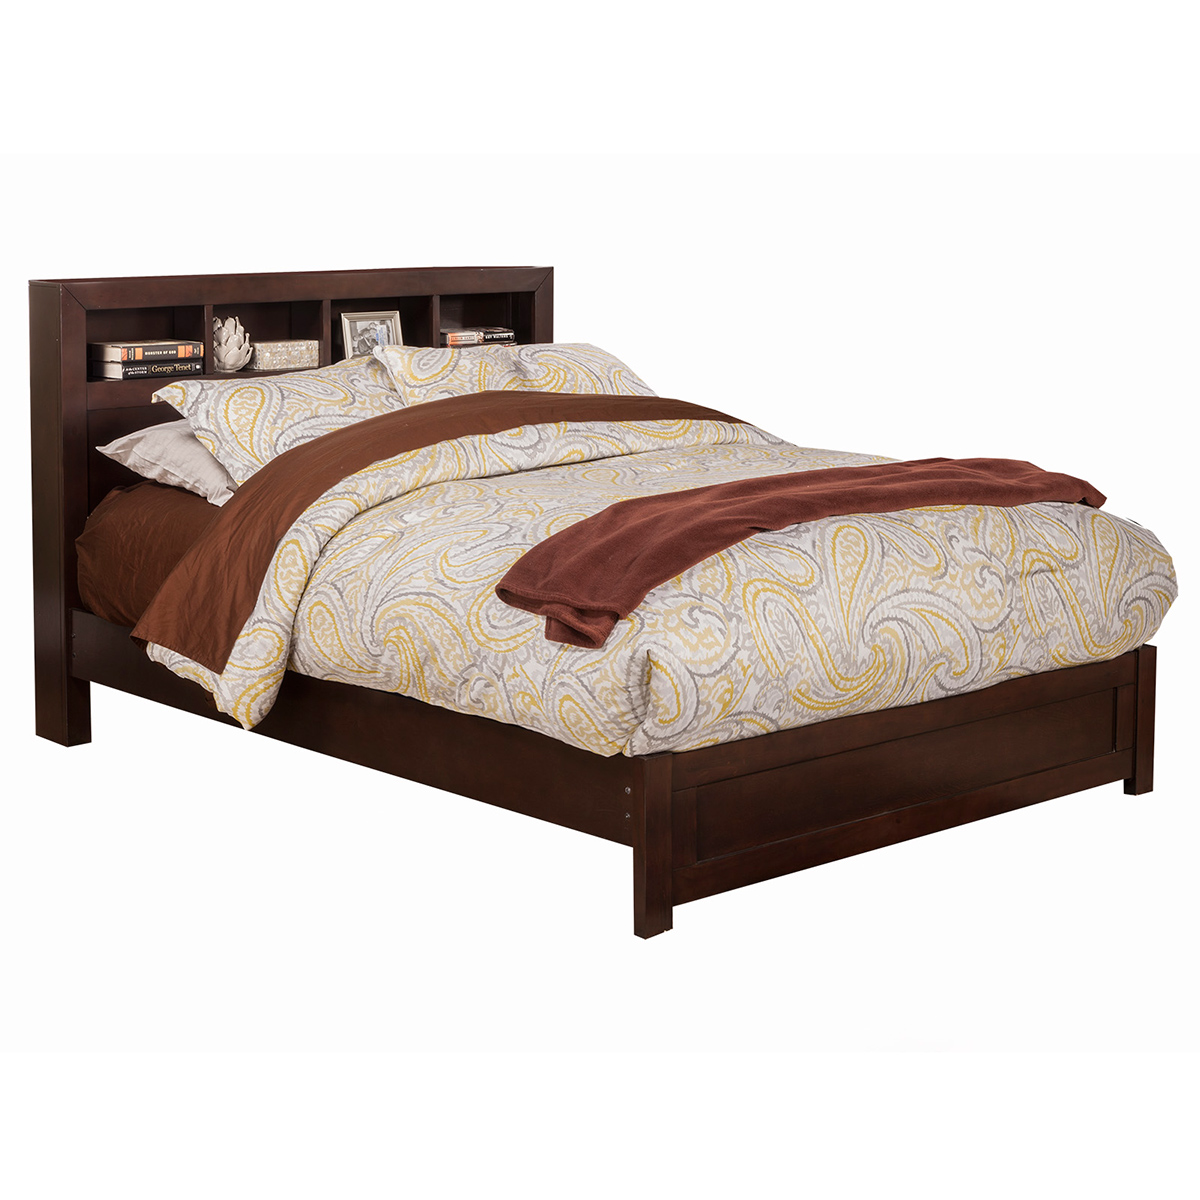 Solana Eastern King Platform Bed W Bookcase Headboard In Cappuccino Finish By Alpine Furniture